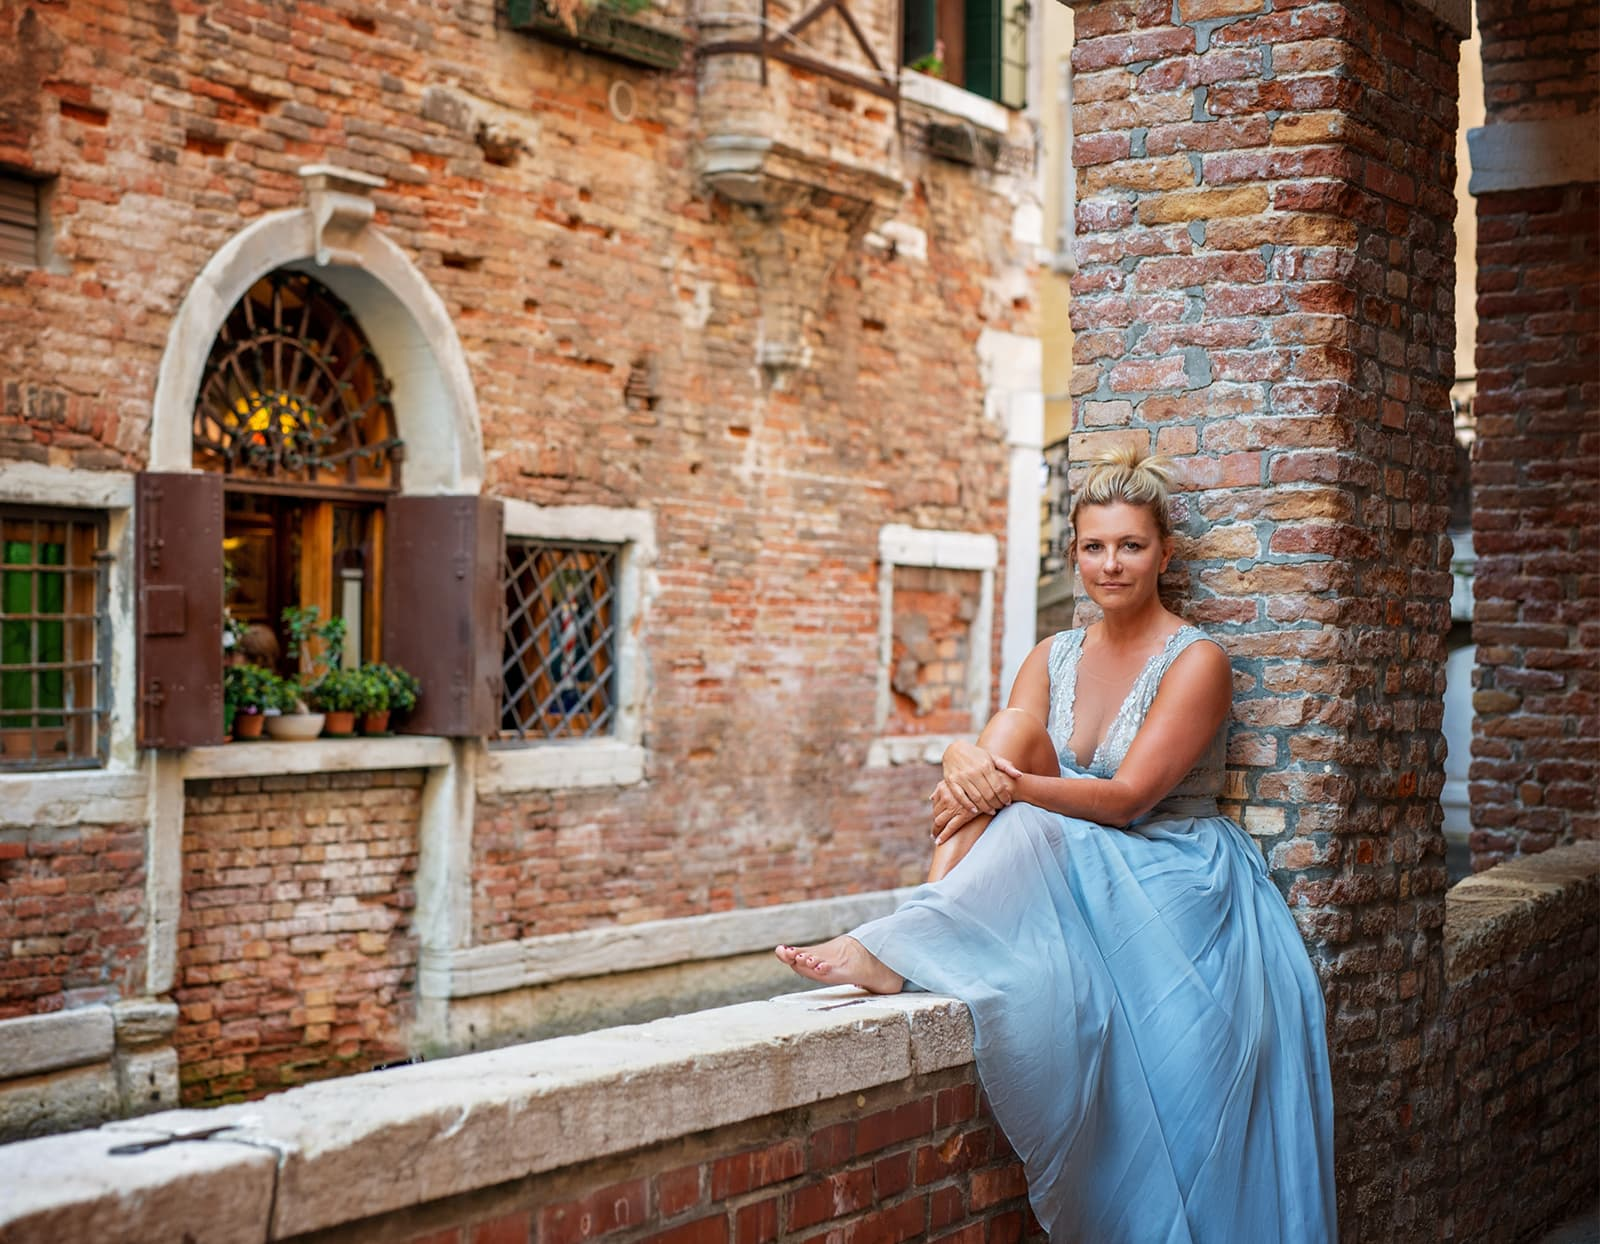 Dream destination fotoshoot Venice gemaakt door fotograaf Katinka Tromp